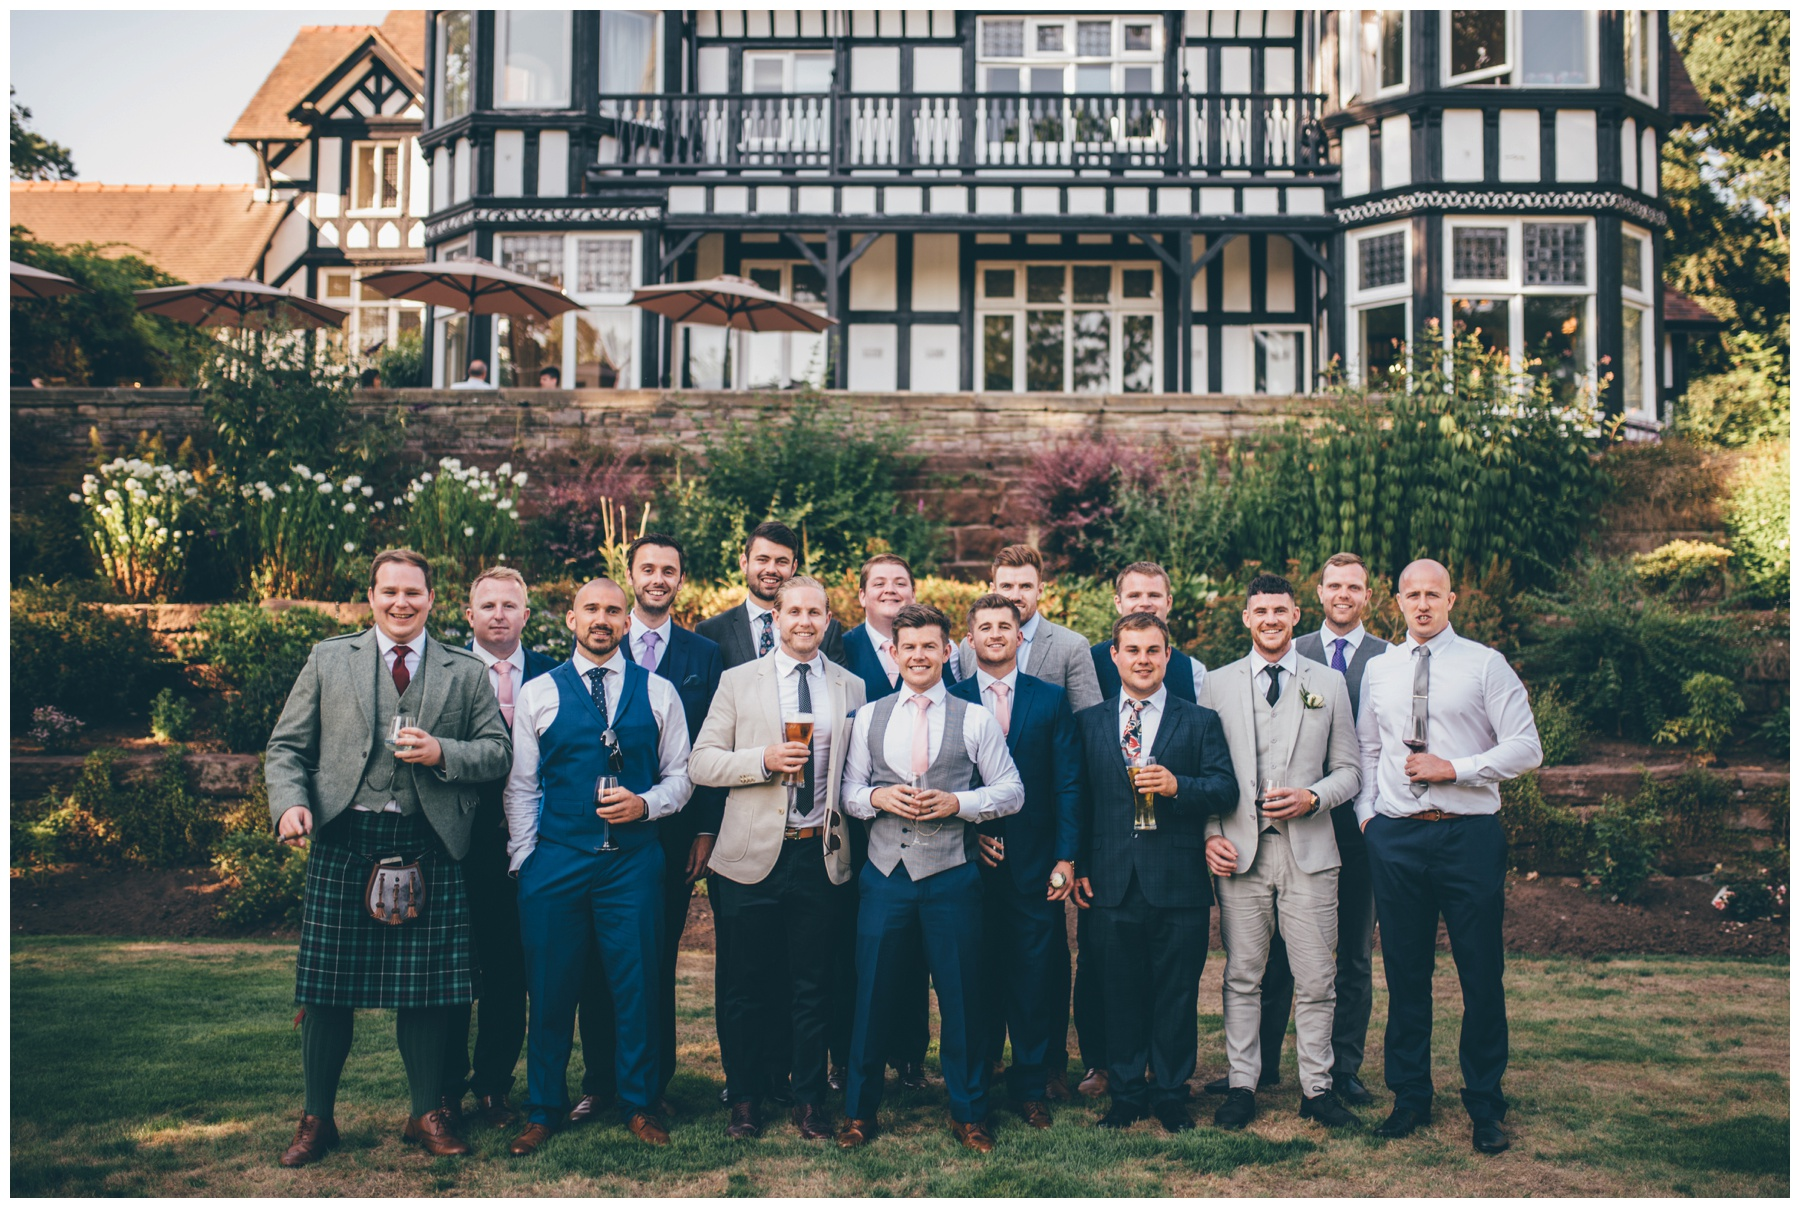 Groom and all his friends outside the wedding venue, Tilstone House.